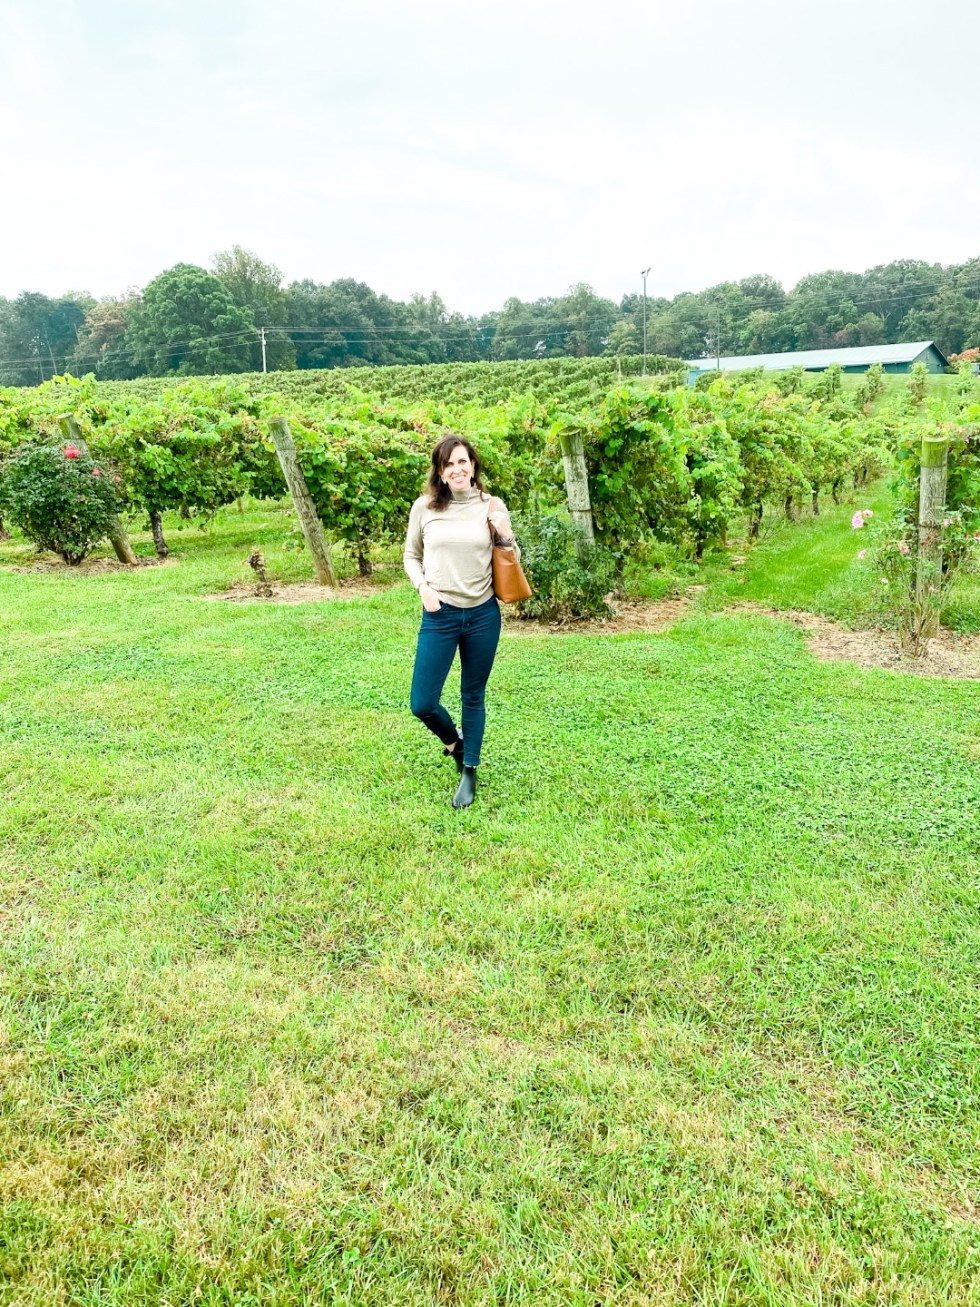 Western NC Wineries: 6 Wineries to Visit During your Next Girls' Weekend - I'm Fixin' To - @mbg0112 |Western NC Wineries by popular NC blog, I'm Fixin' To: image of a woman standing outside at Shelton Vineyards.